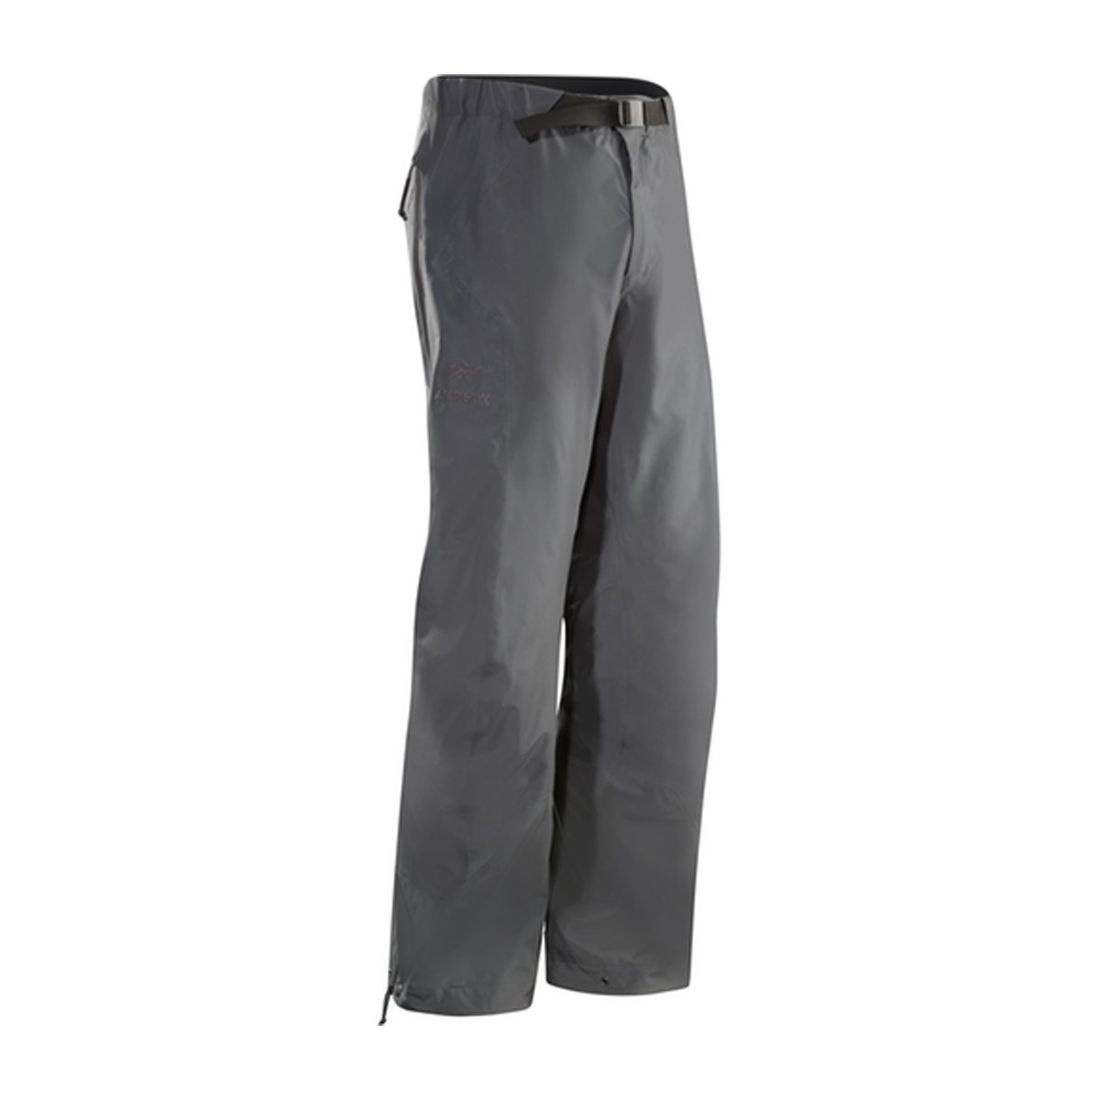 Arc'teryx LEAF Arc'teryx LEAF Alpha LT Pant LEAF Men's (Revised) (CA)*